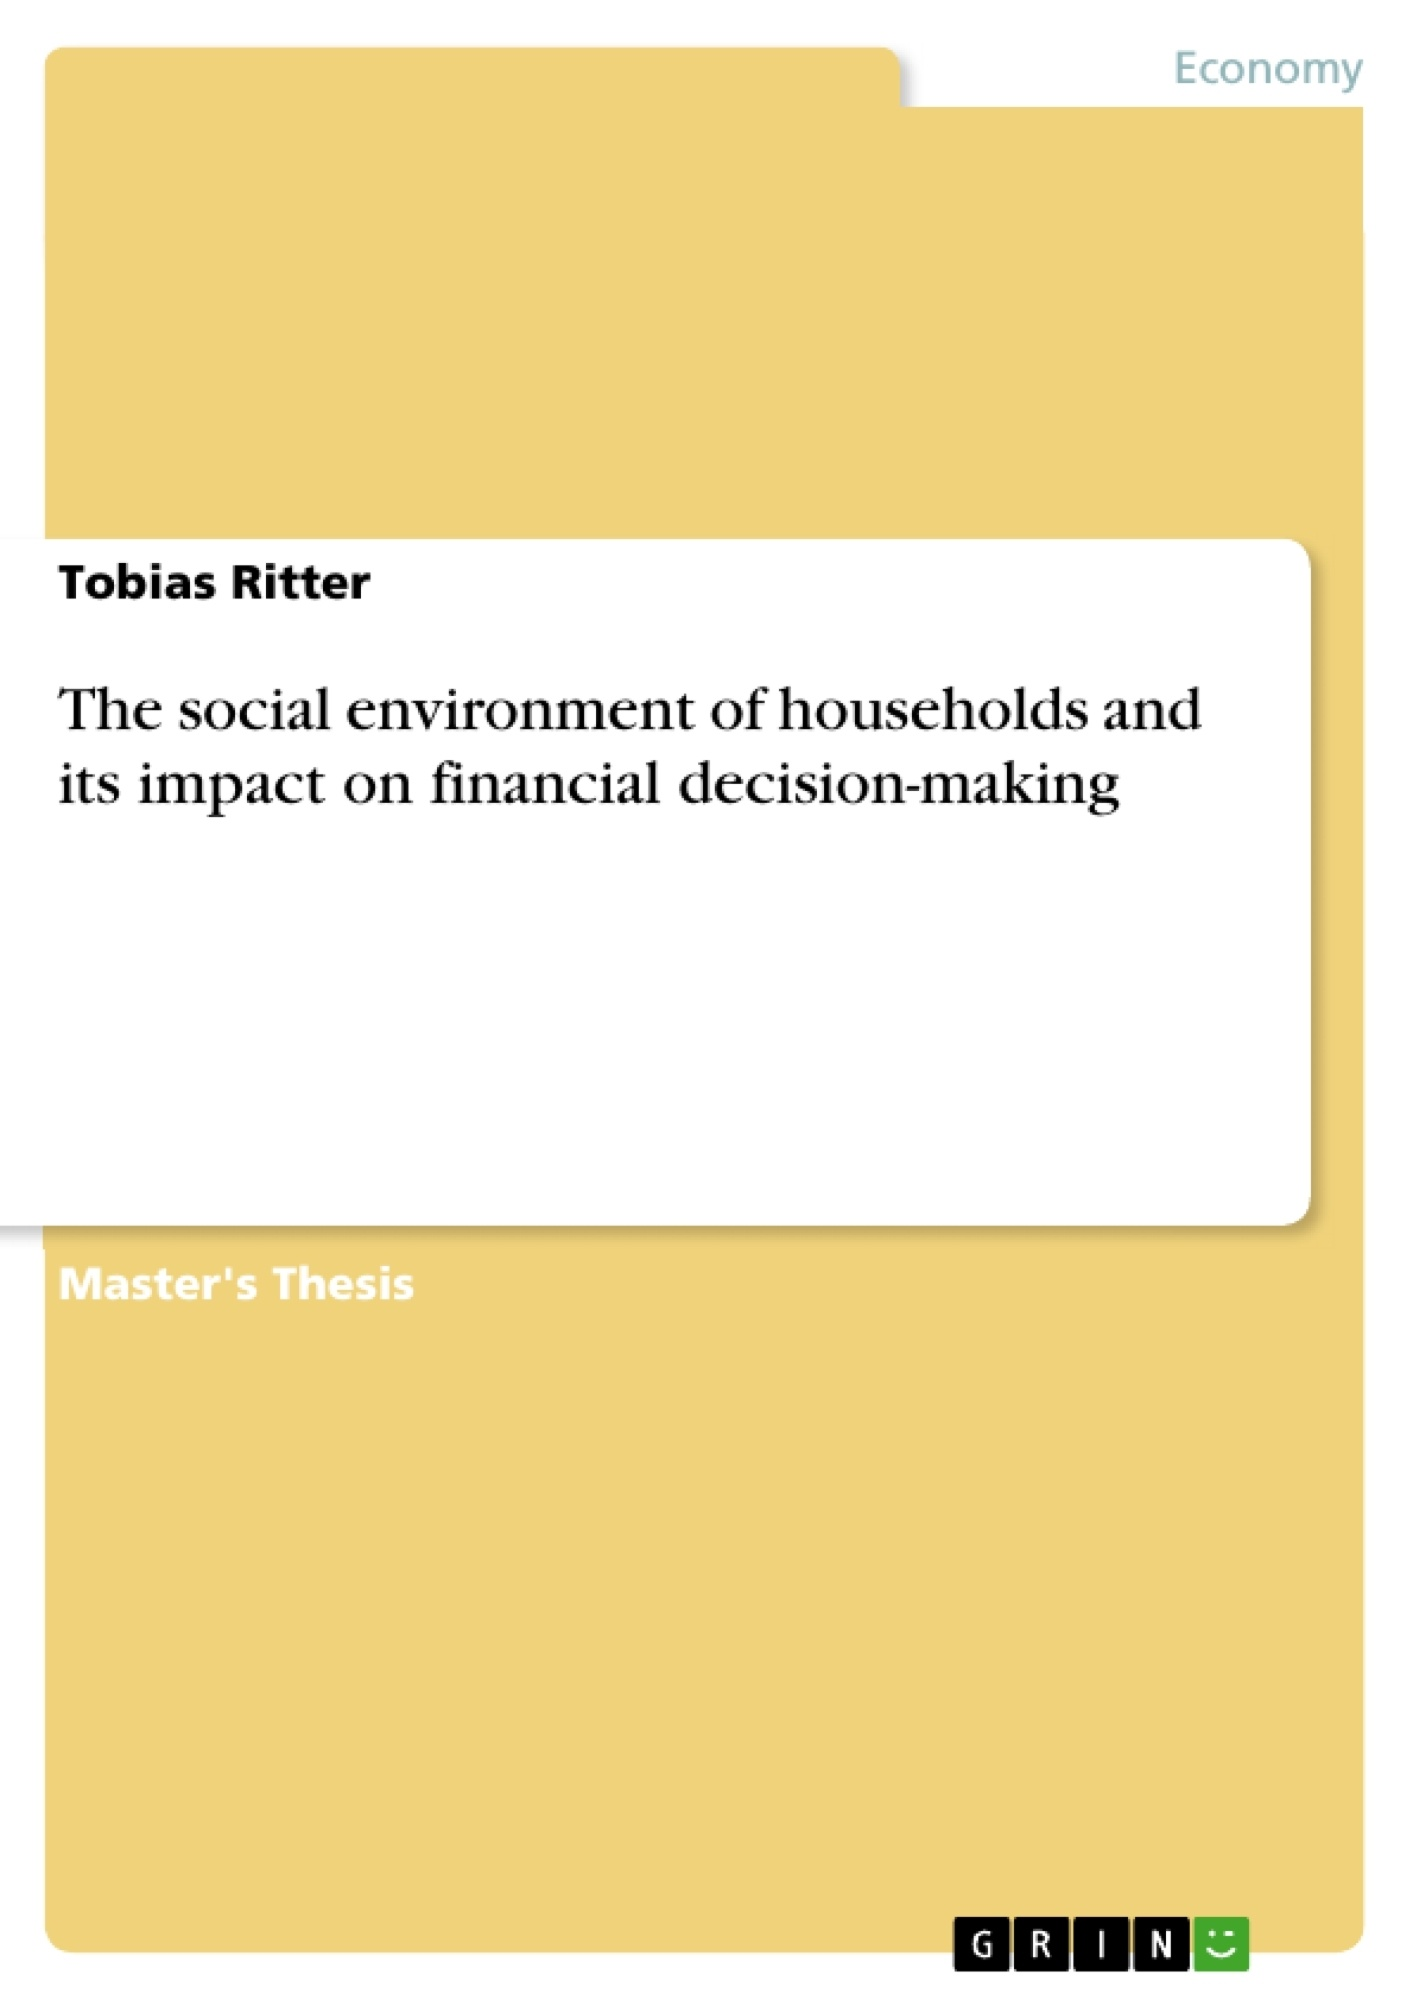 Title: The social environment of households and its impact on financial decision-making